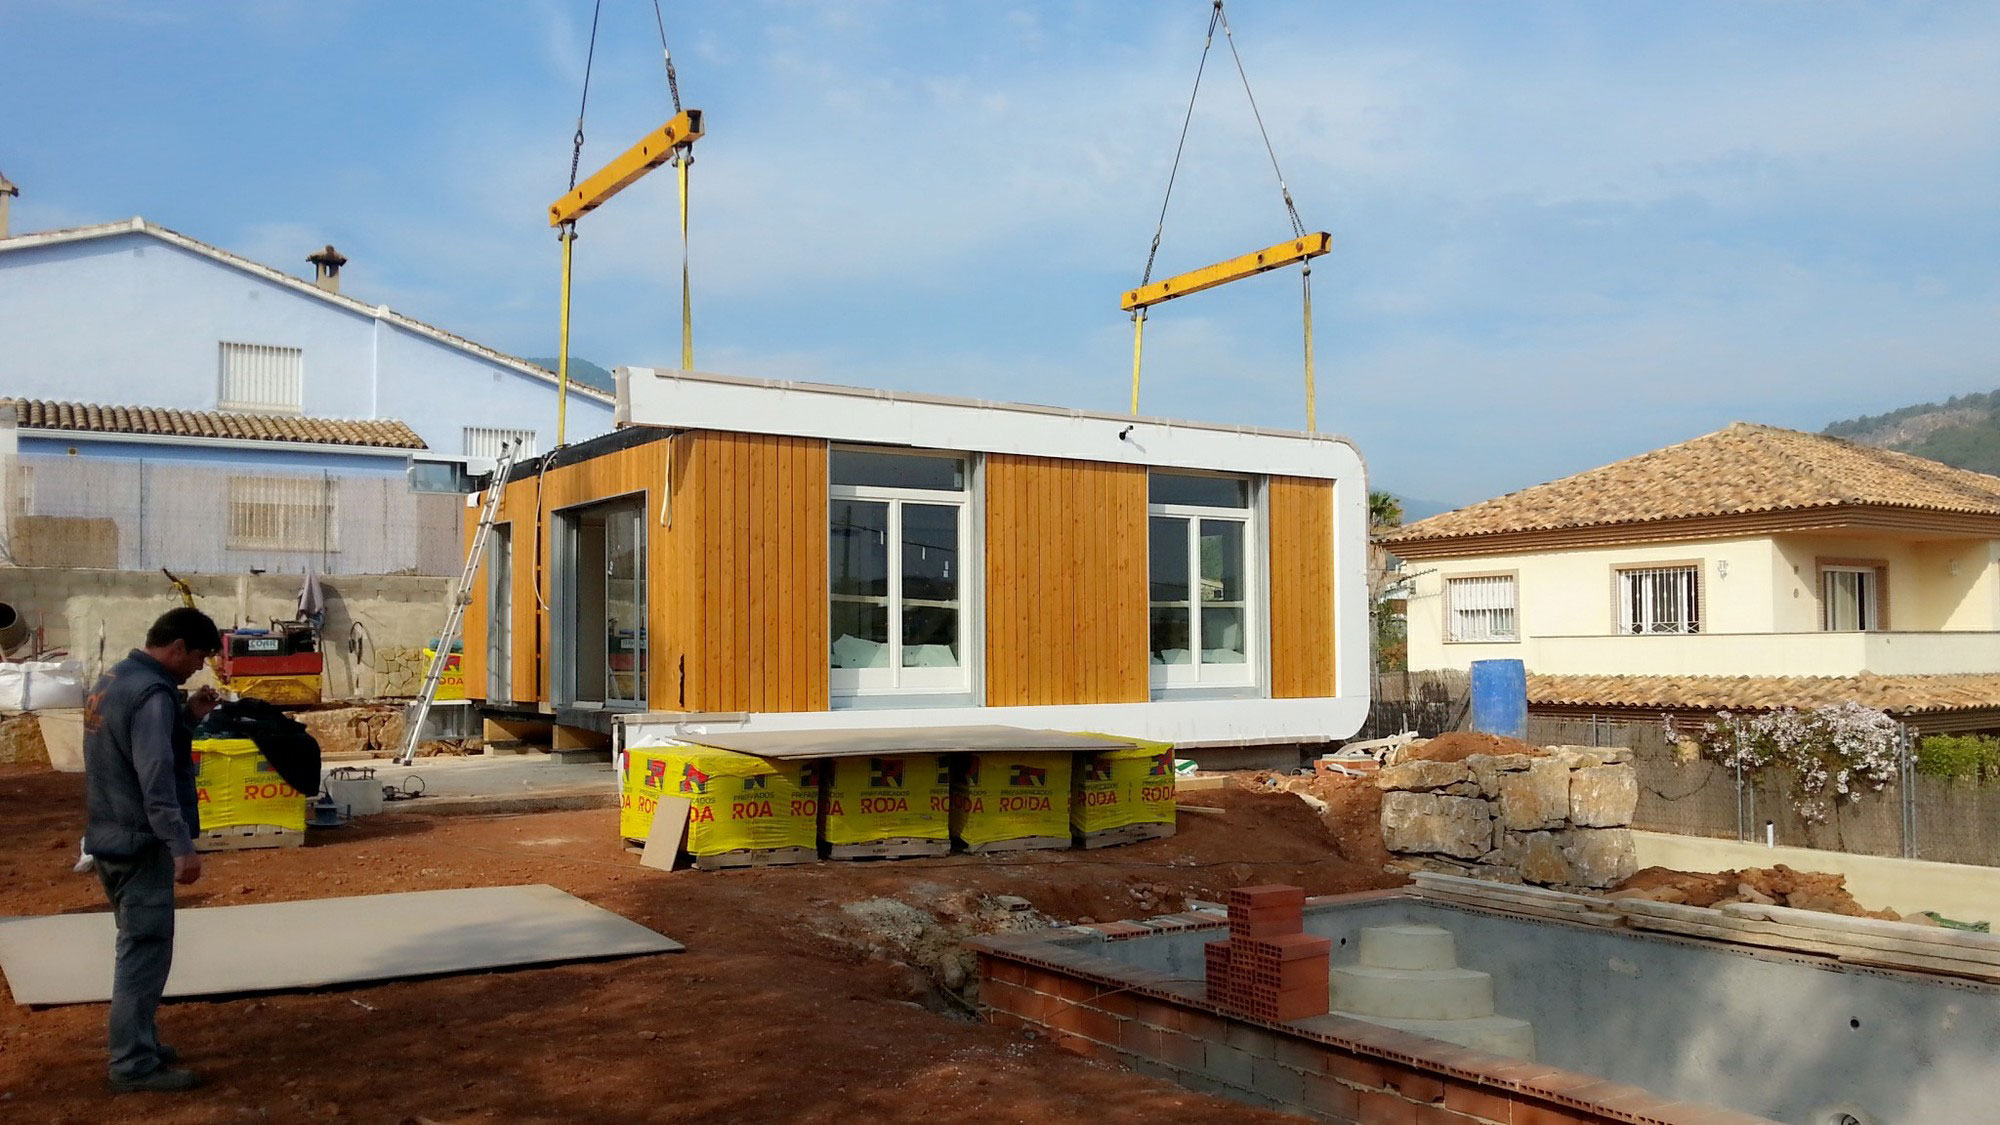 Eco-Friendly and Energy Efficiency with Mobile Device Control of El Refugio Inteligente by NOEM-02